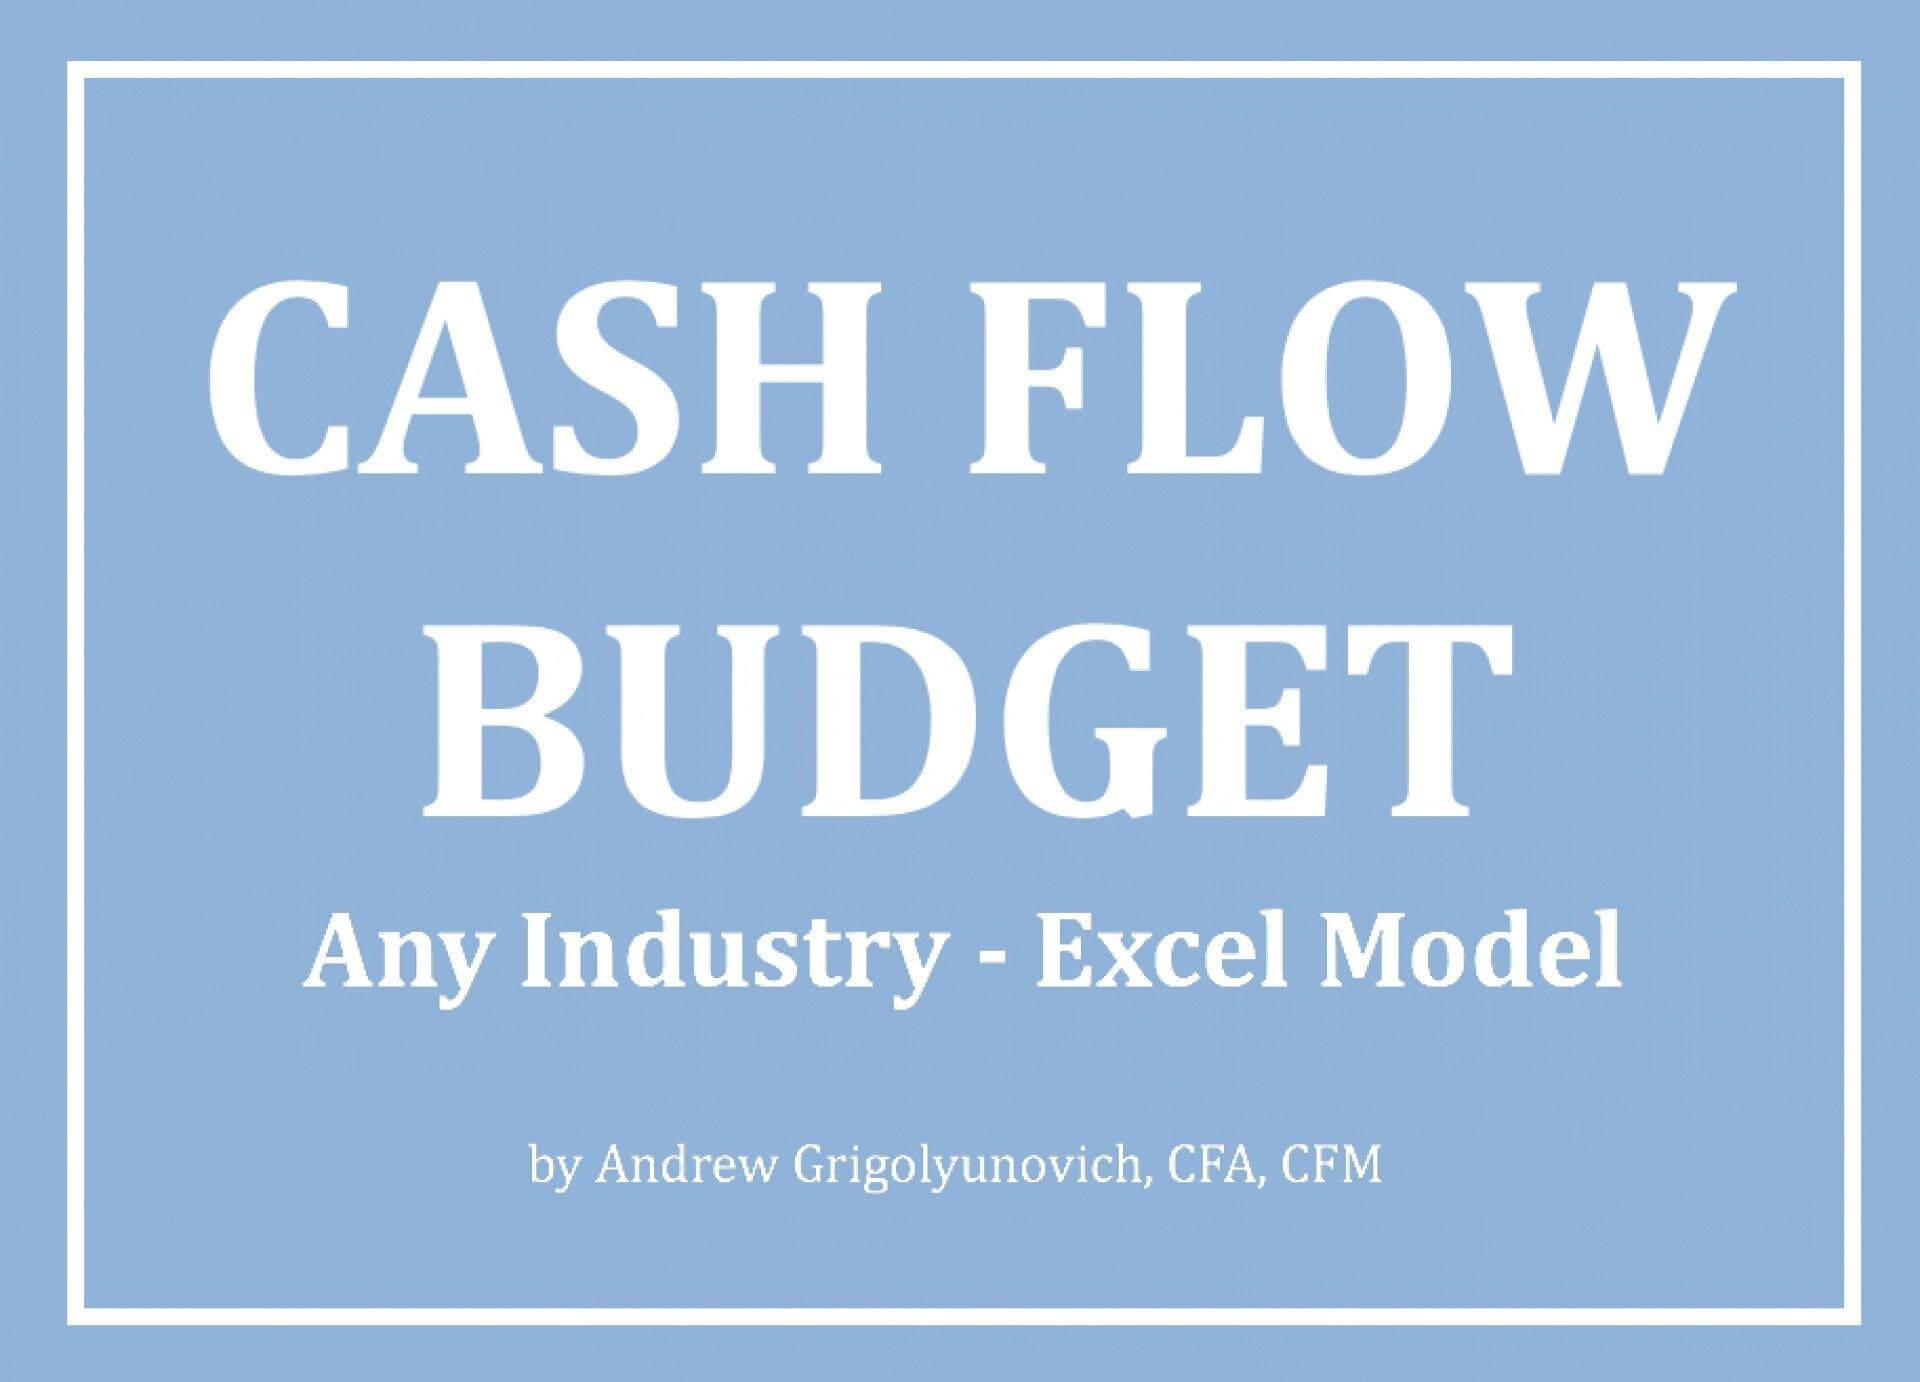 Cash Flow Budget Excel Model - Any Industry - Templarket -  Business Templates Marketplace